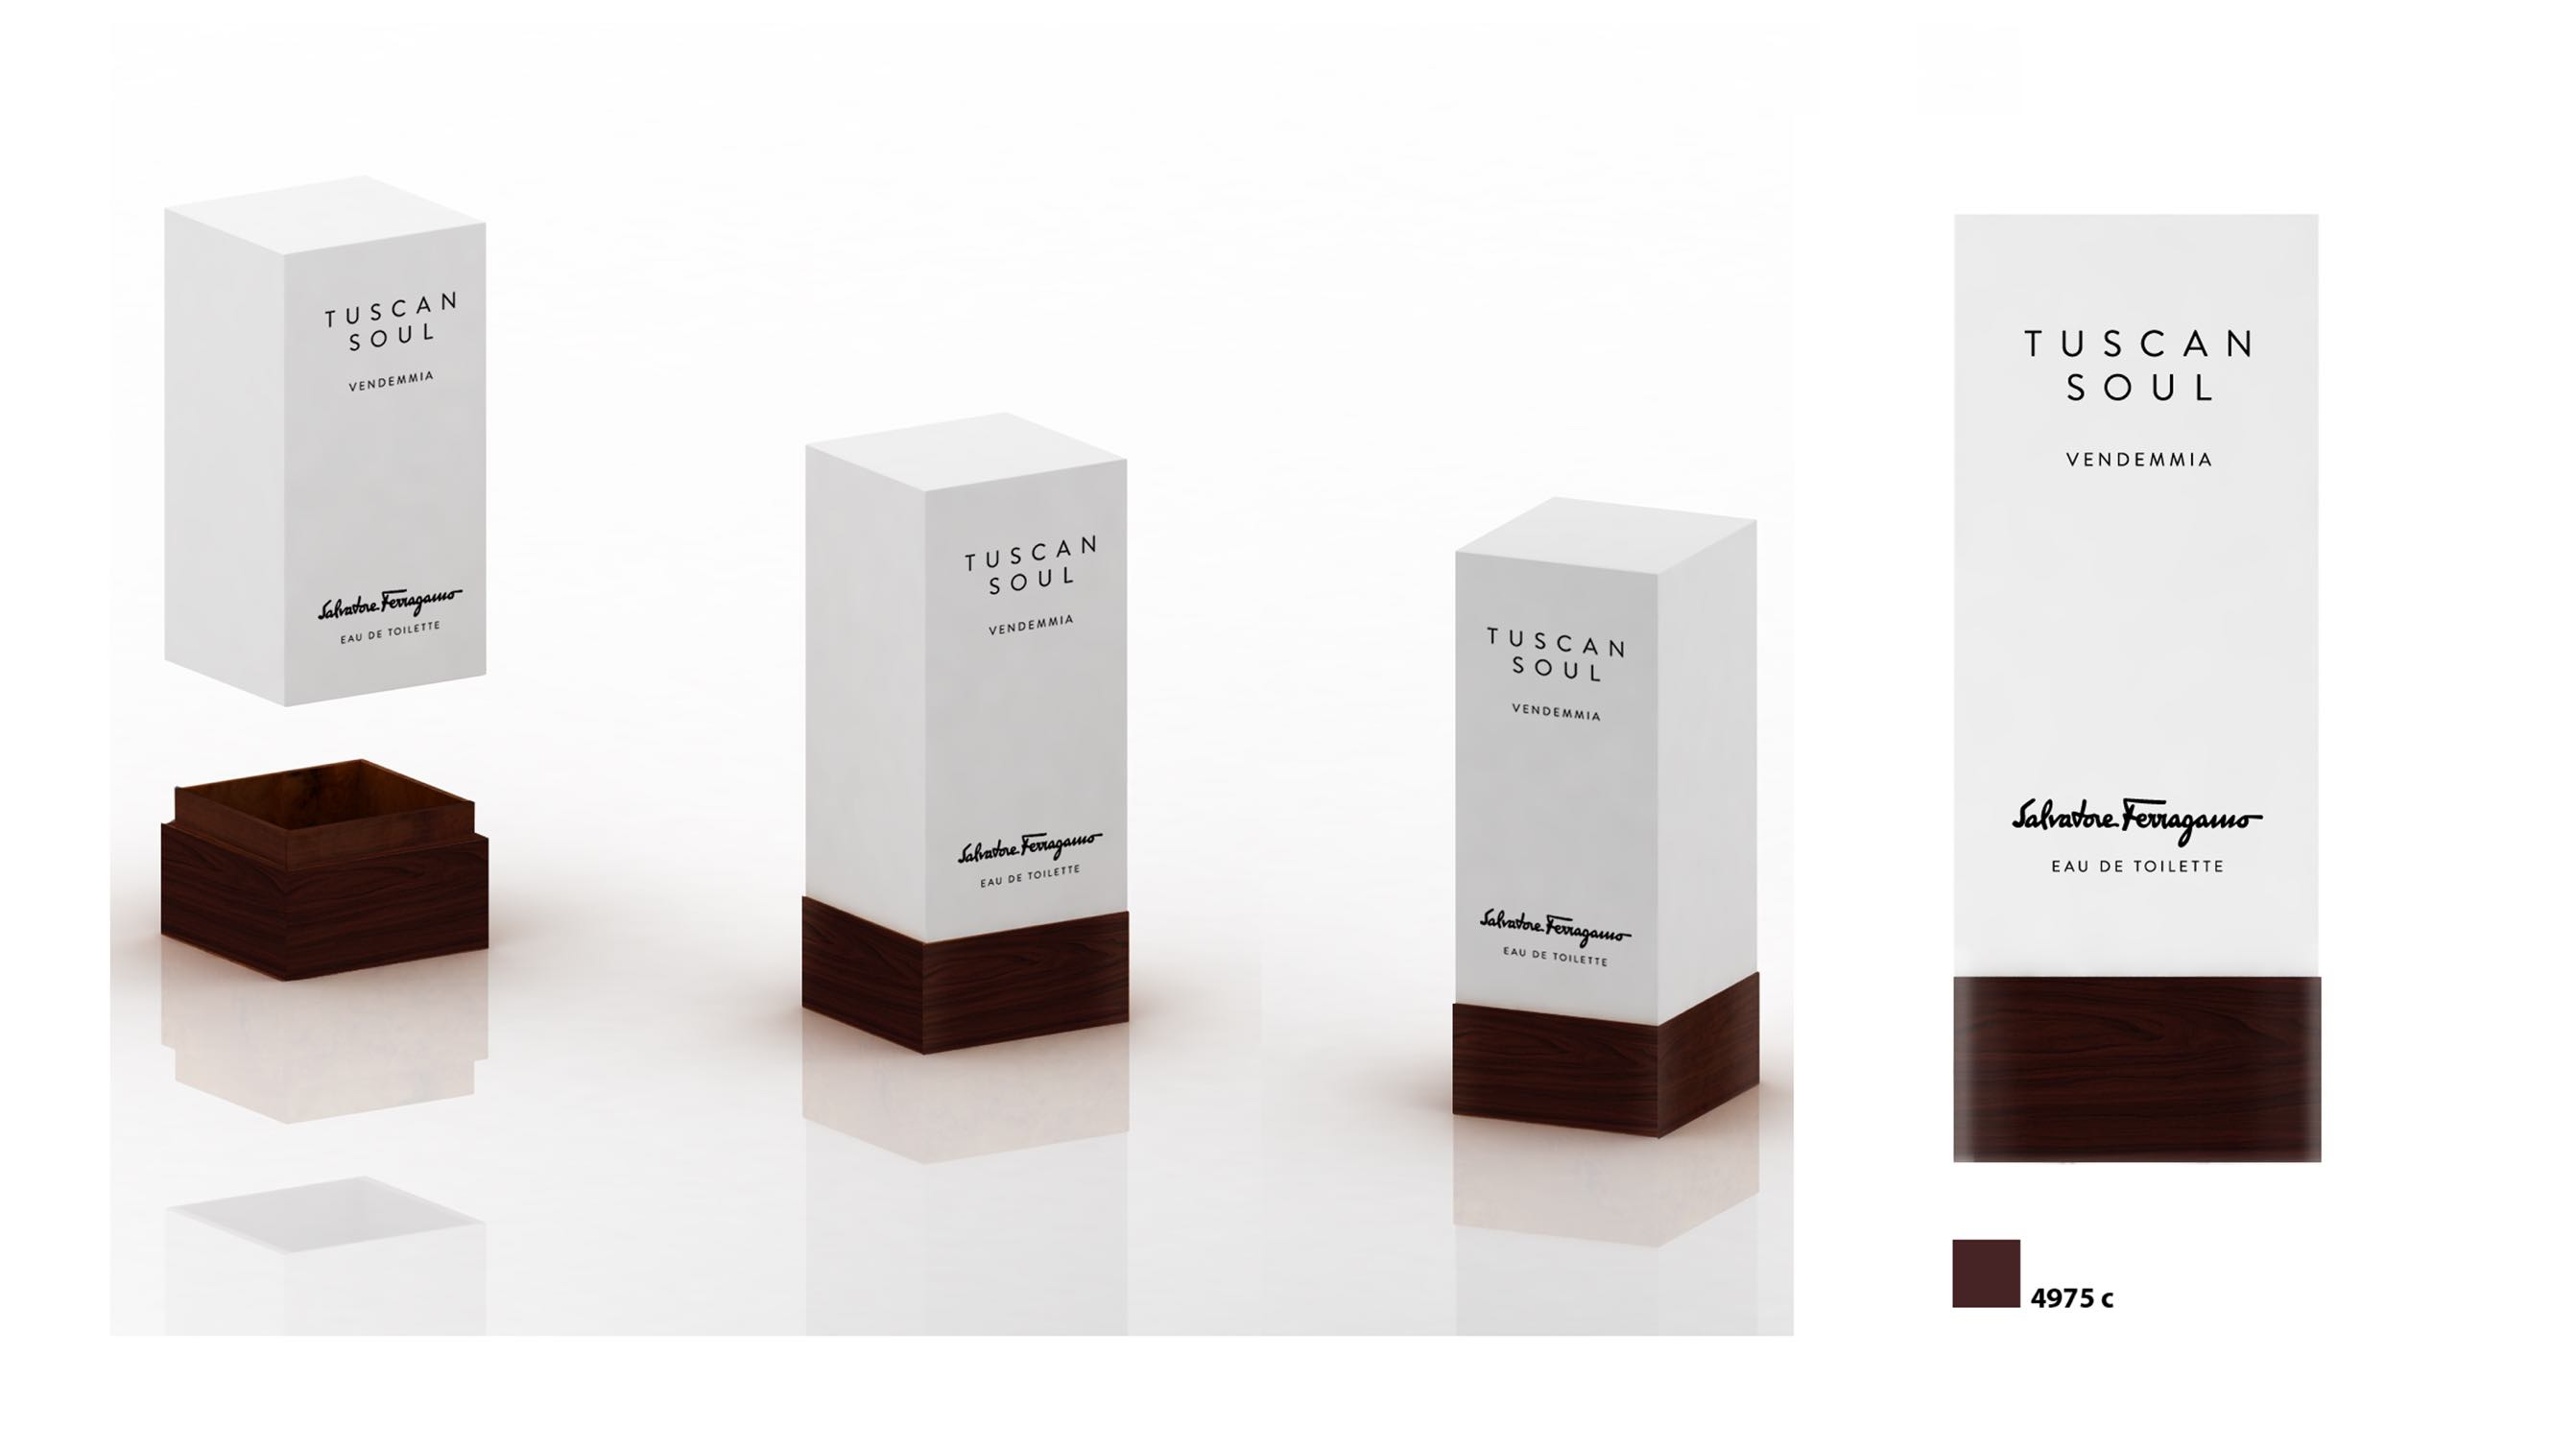 Brand strategy and product packaging design by Luther Dsgn for Salvatore Ferragamo